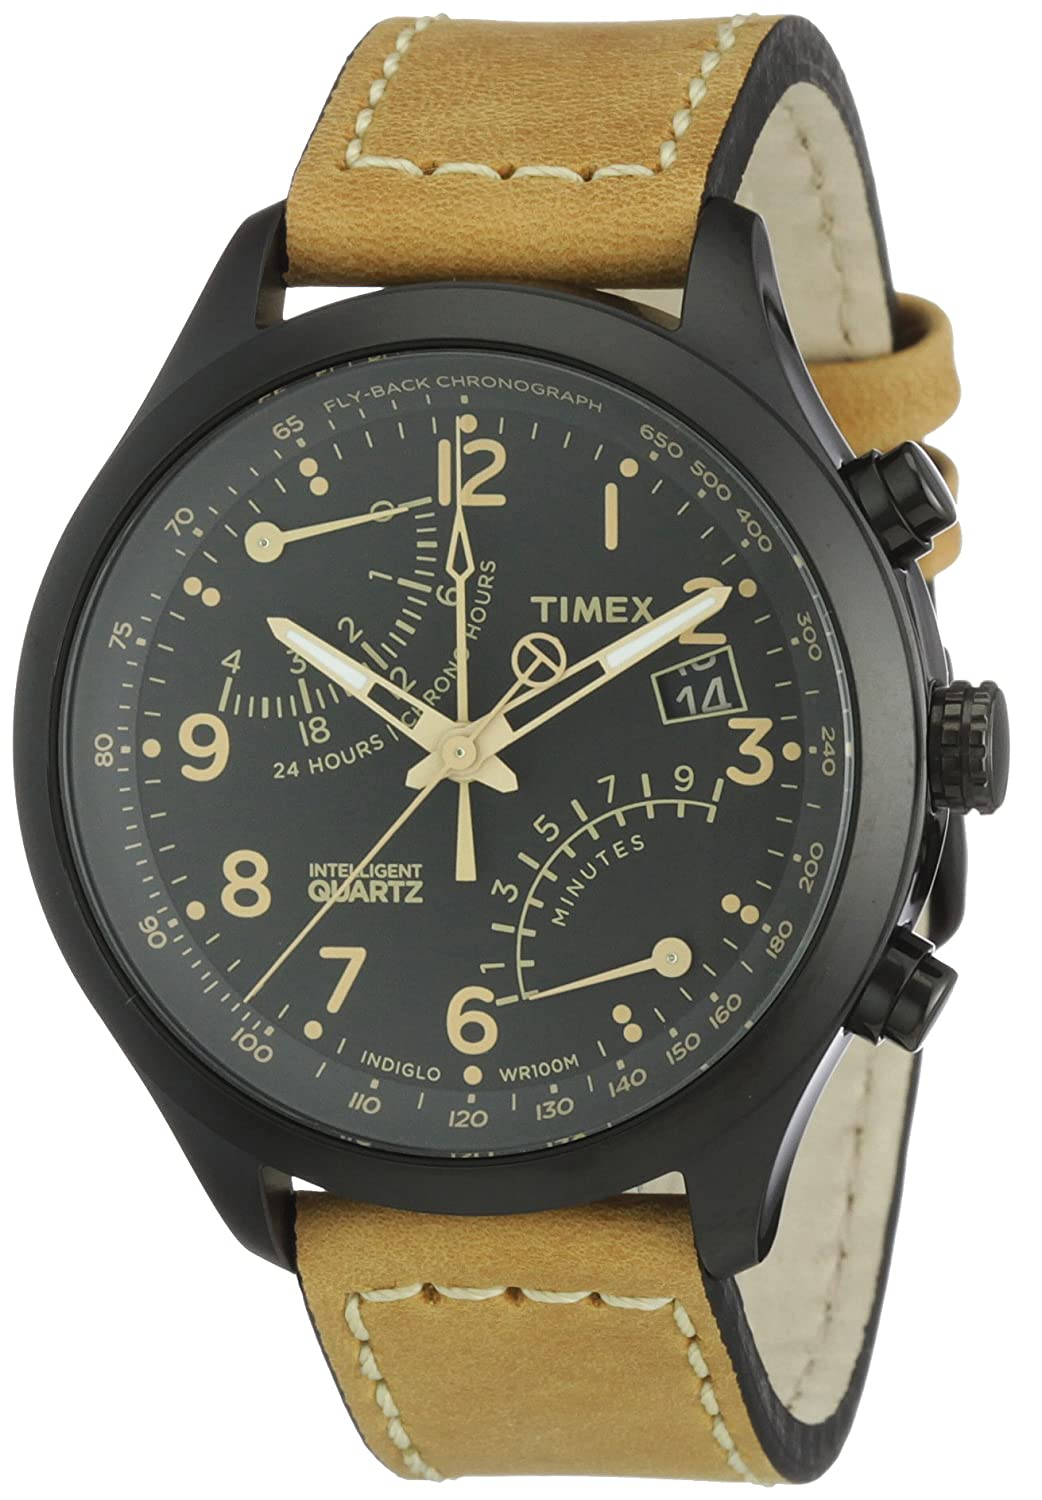 timex men s t2n700 intelligent quartz watch black dial fly timex men s t2n700 intelligent quartz watch black dial fly back chronograph display and beige leather strap timex amazon co uk watches